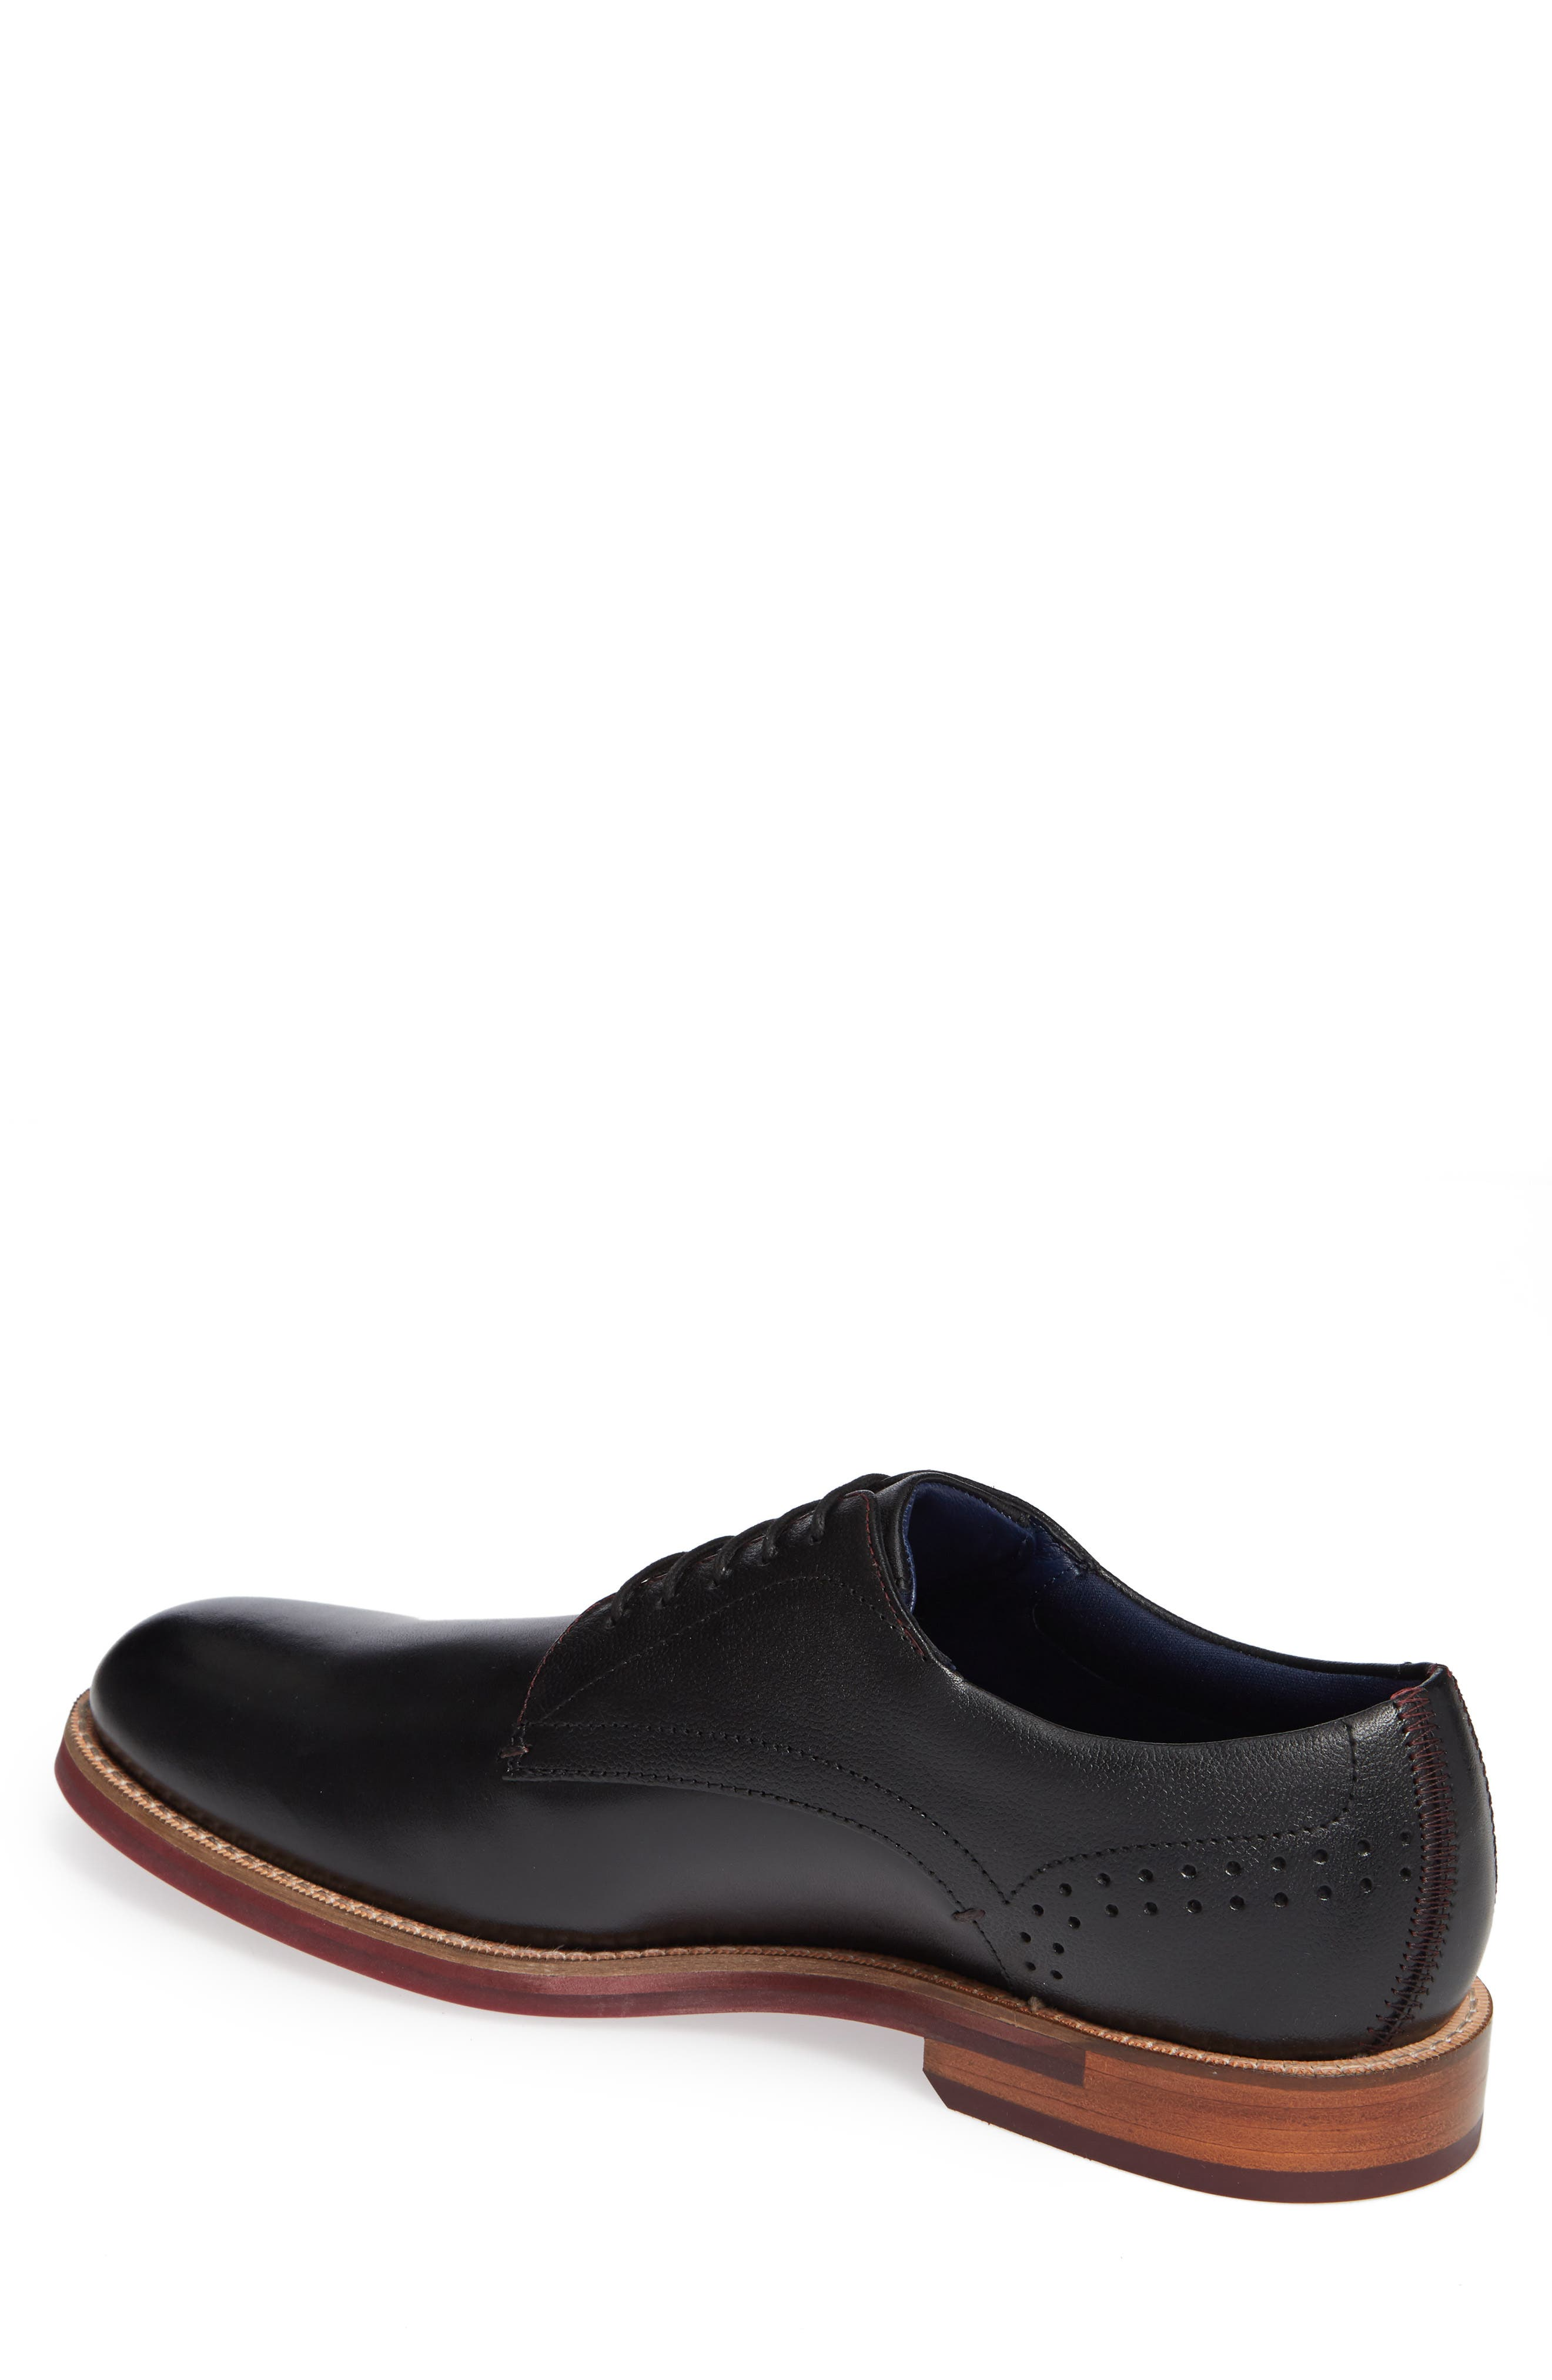 Jhorge Plain Toe Derby,                             Alternate thumbnail 2, color,                             BLACK LEATHER